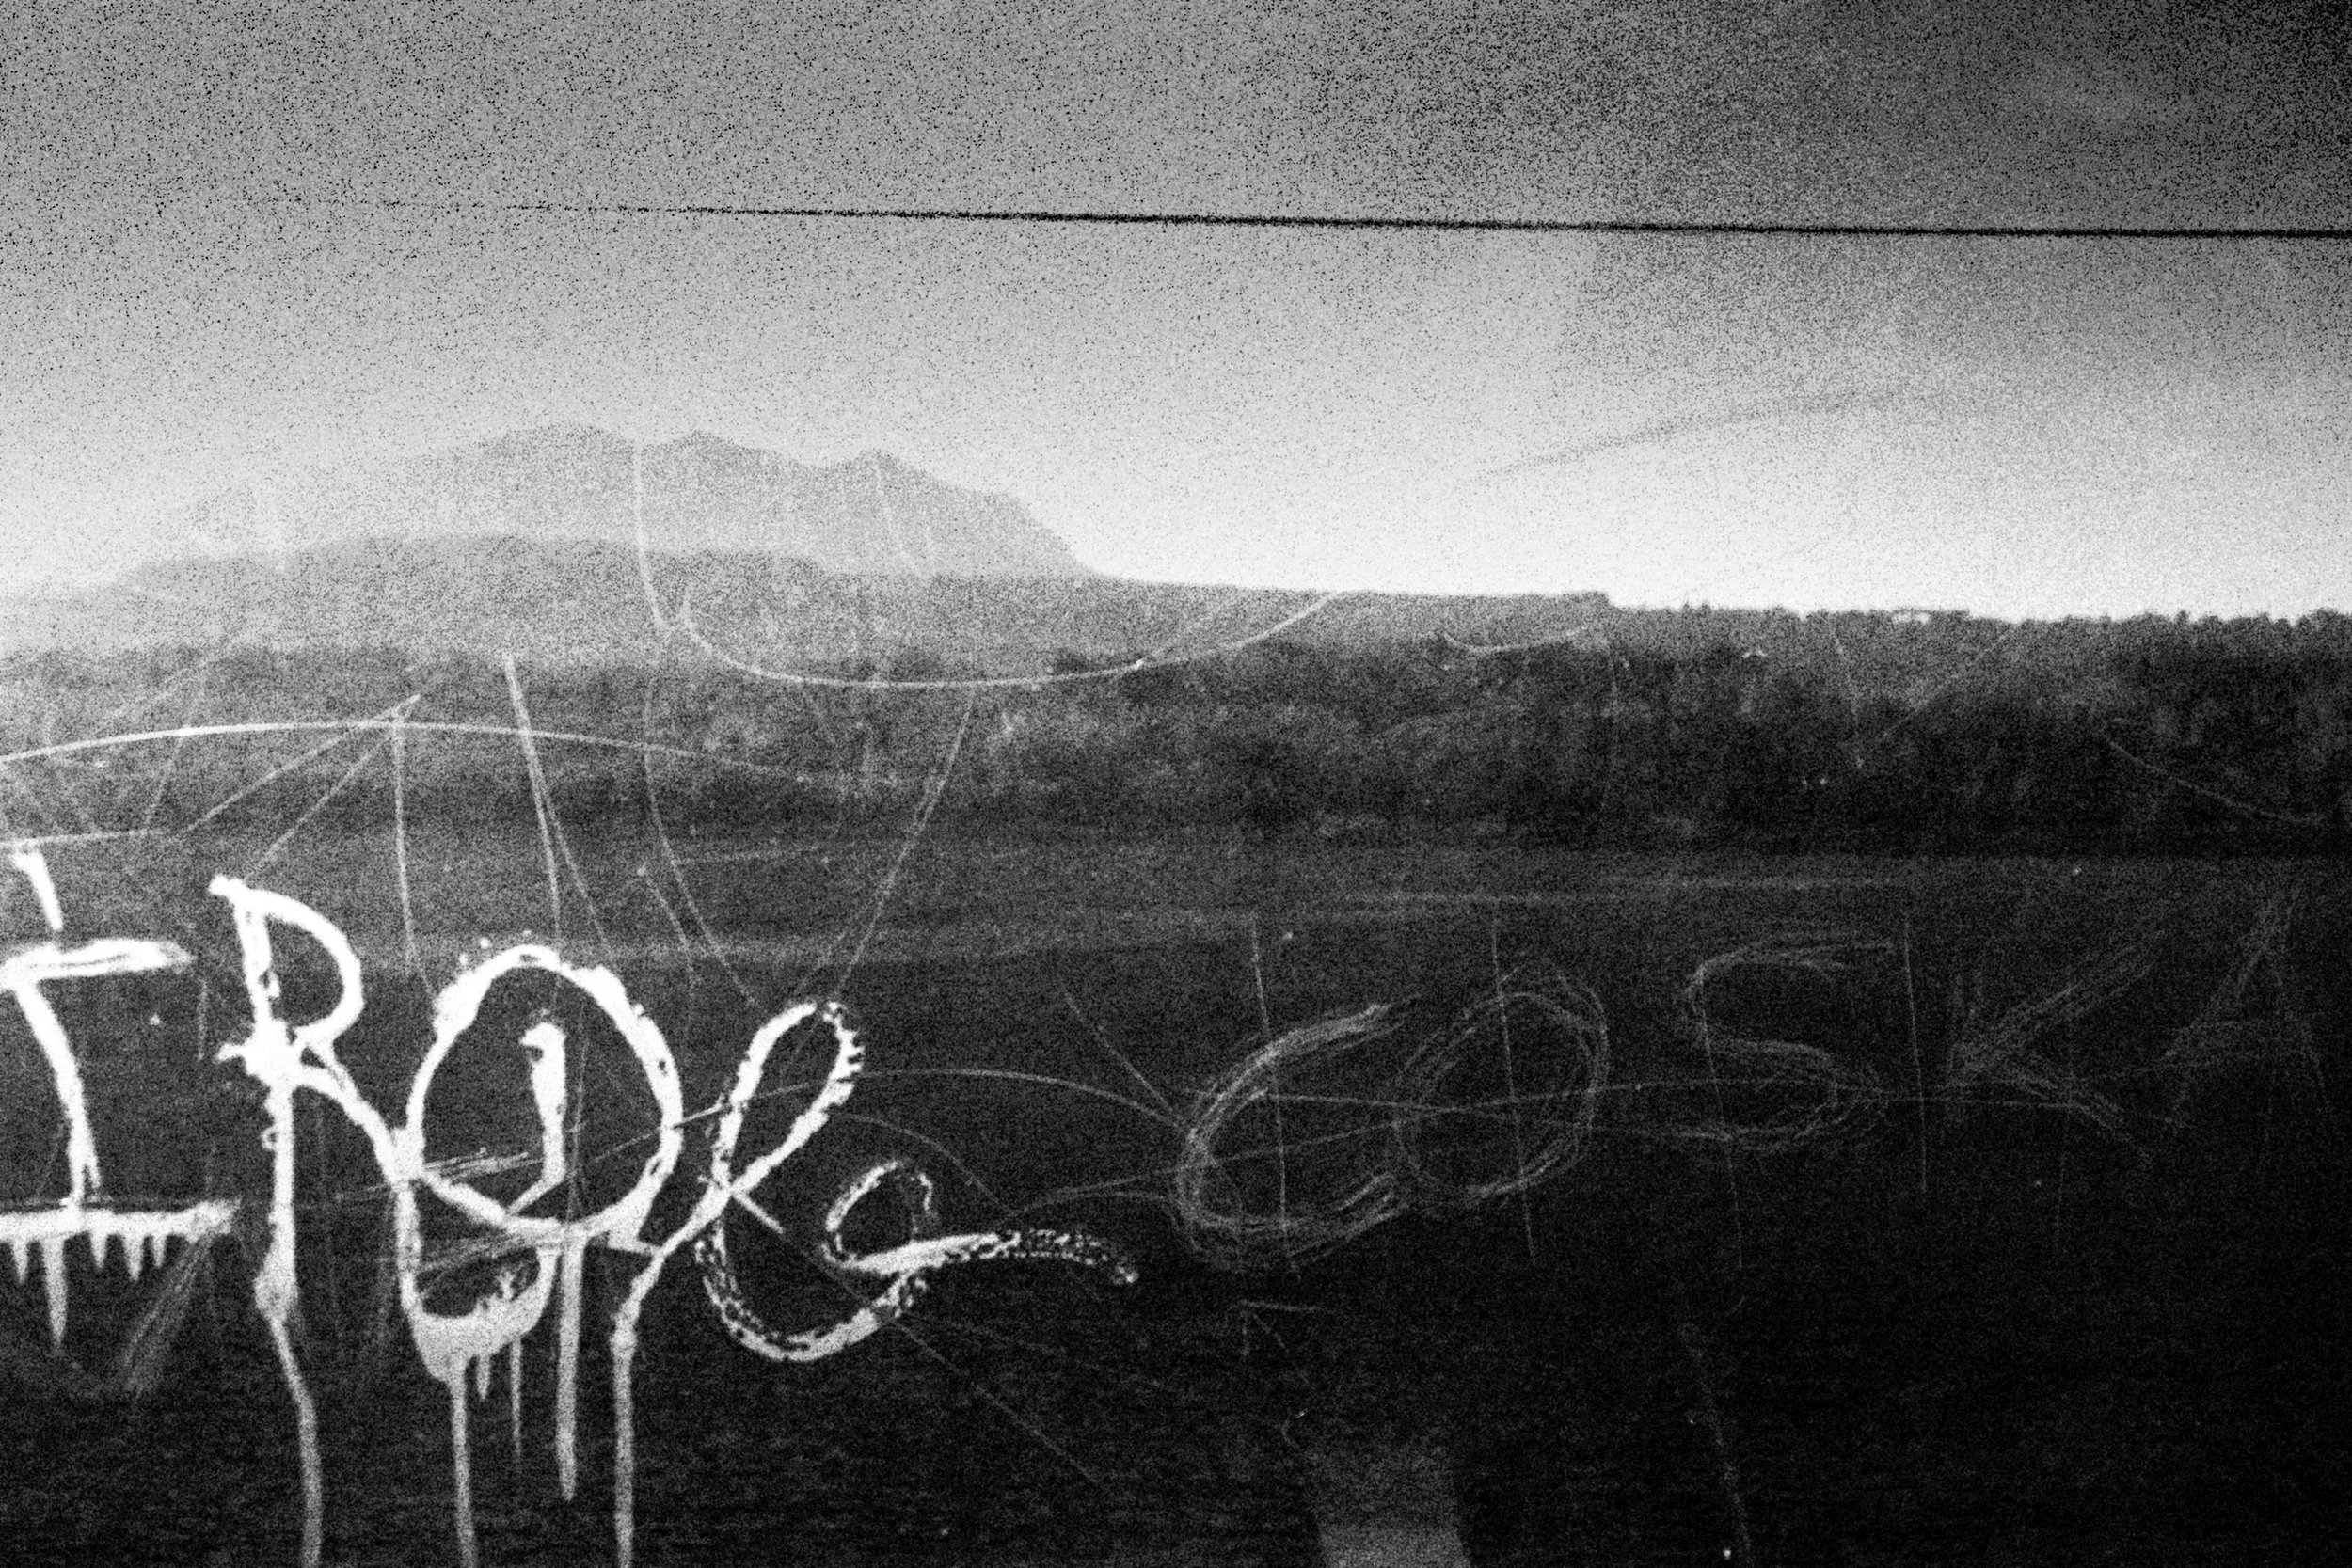 View from a train window. If they can afford to, refugees buy train tickets through Italy to cities like Berlin and Paris. However, since the closing of borders to refugees, trains are too visible and a people risk being detained.